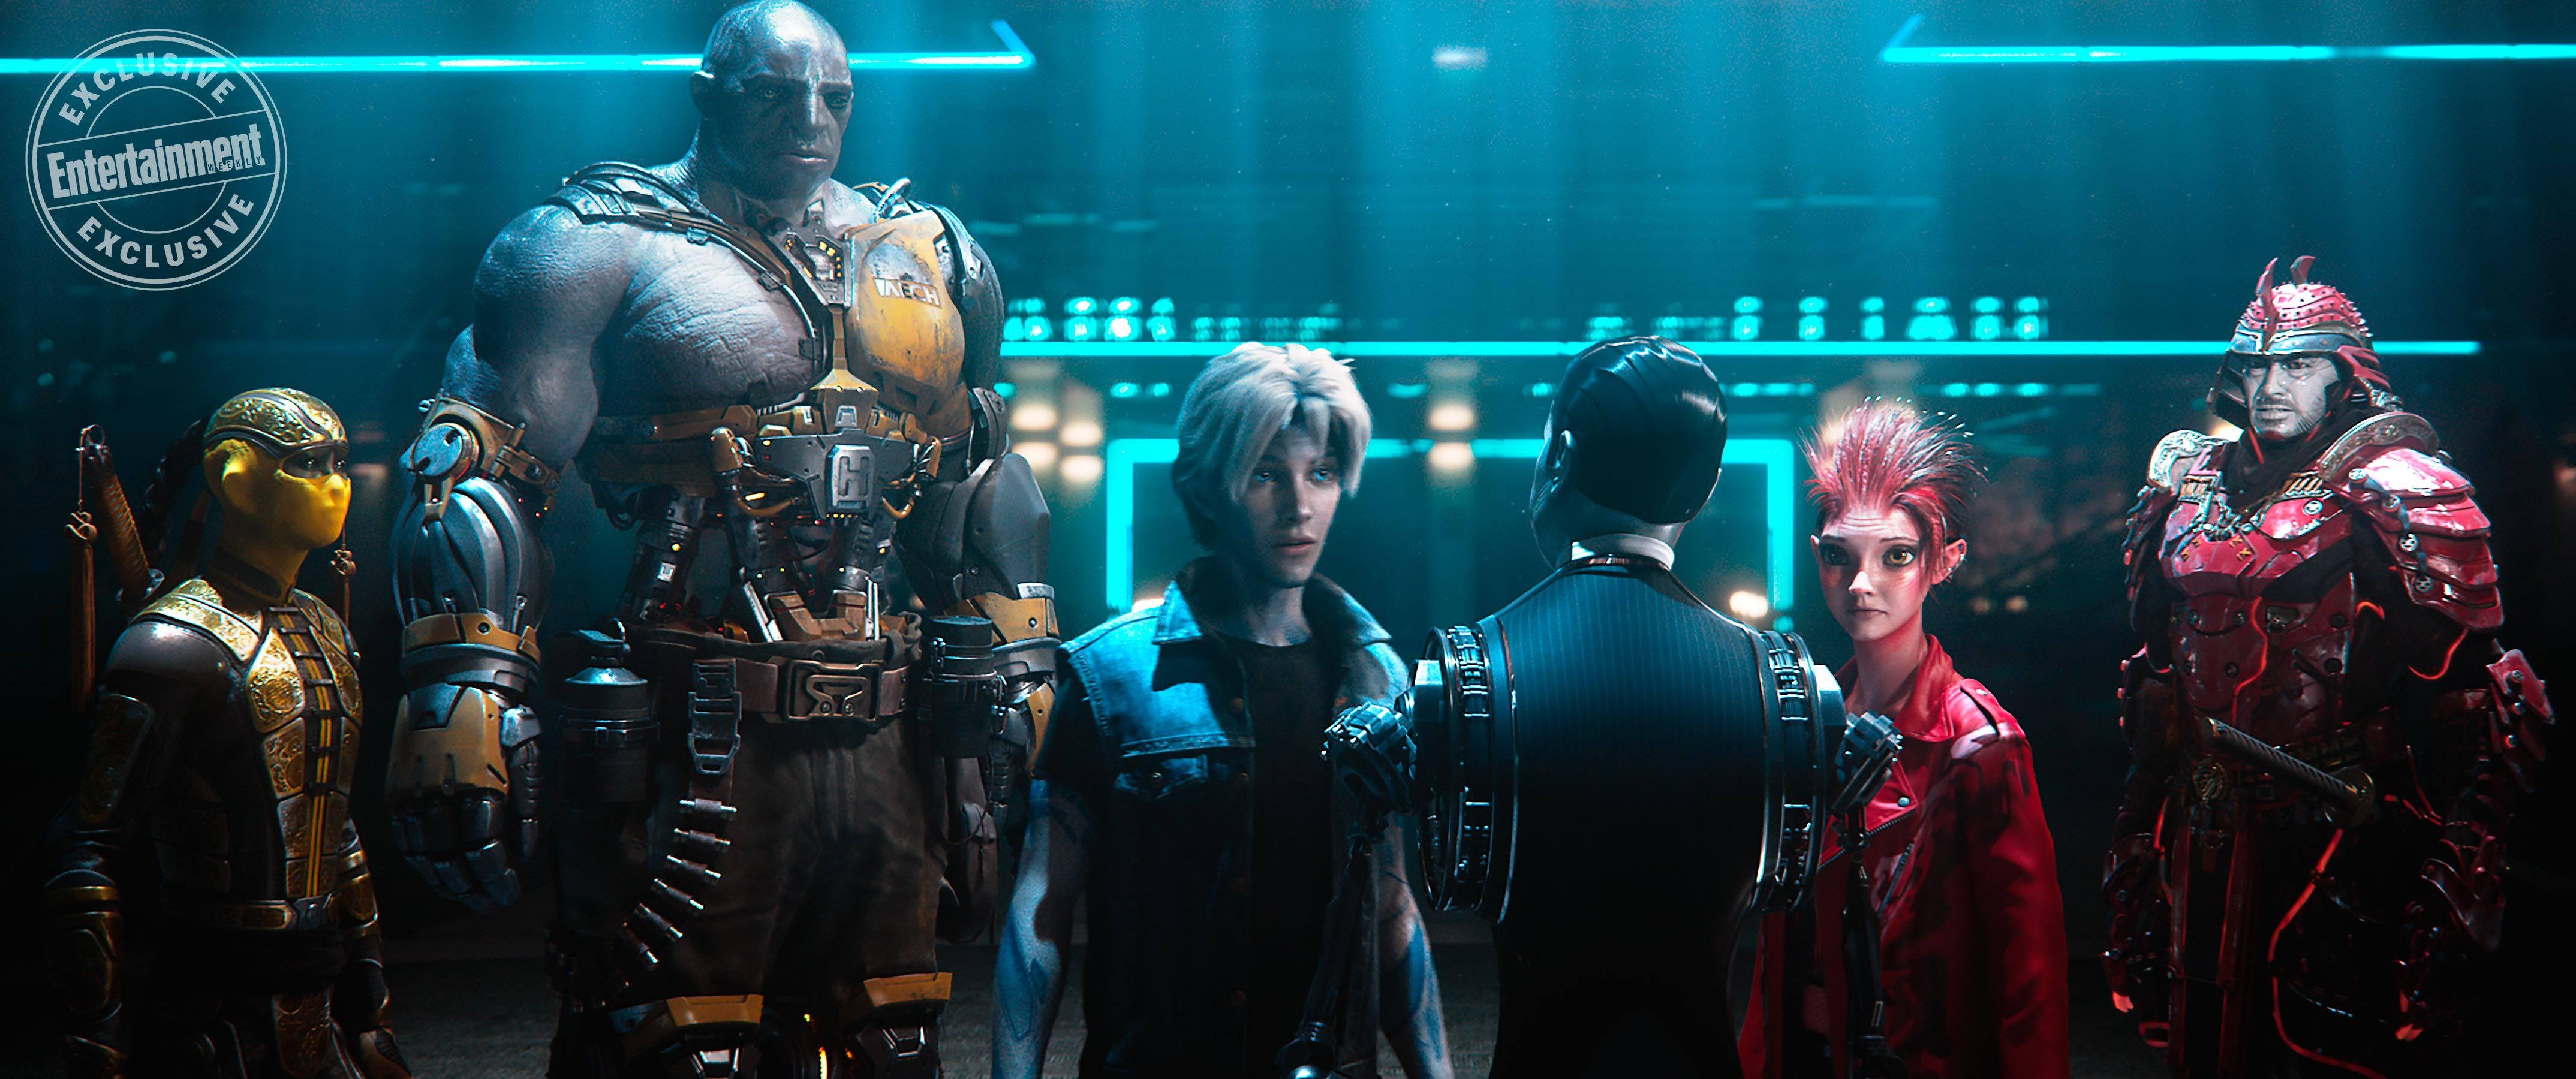 Spielberg Vowed Not To Include His Own Movies In Ready Player One His Crew Tried Anyway Ready Player One Movie Ready Player One Ready Player One Characters